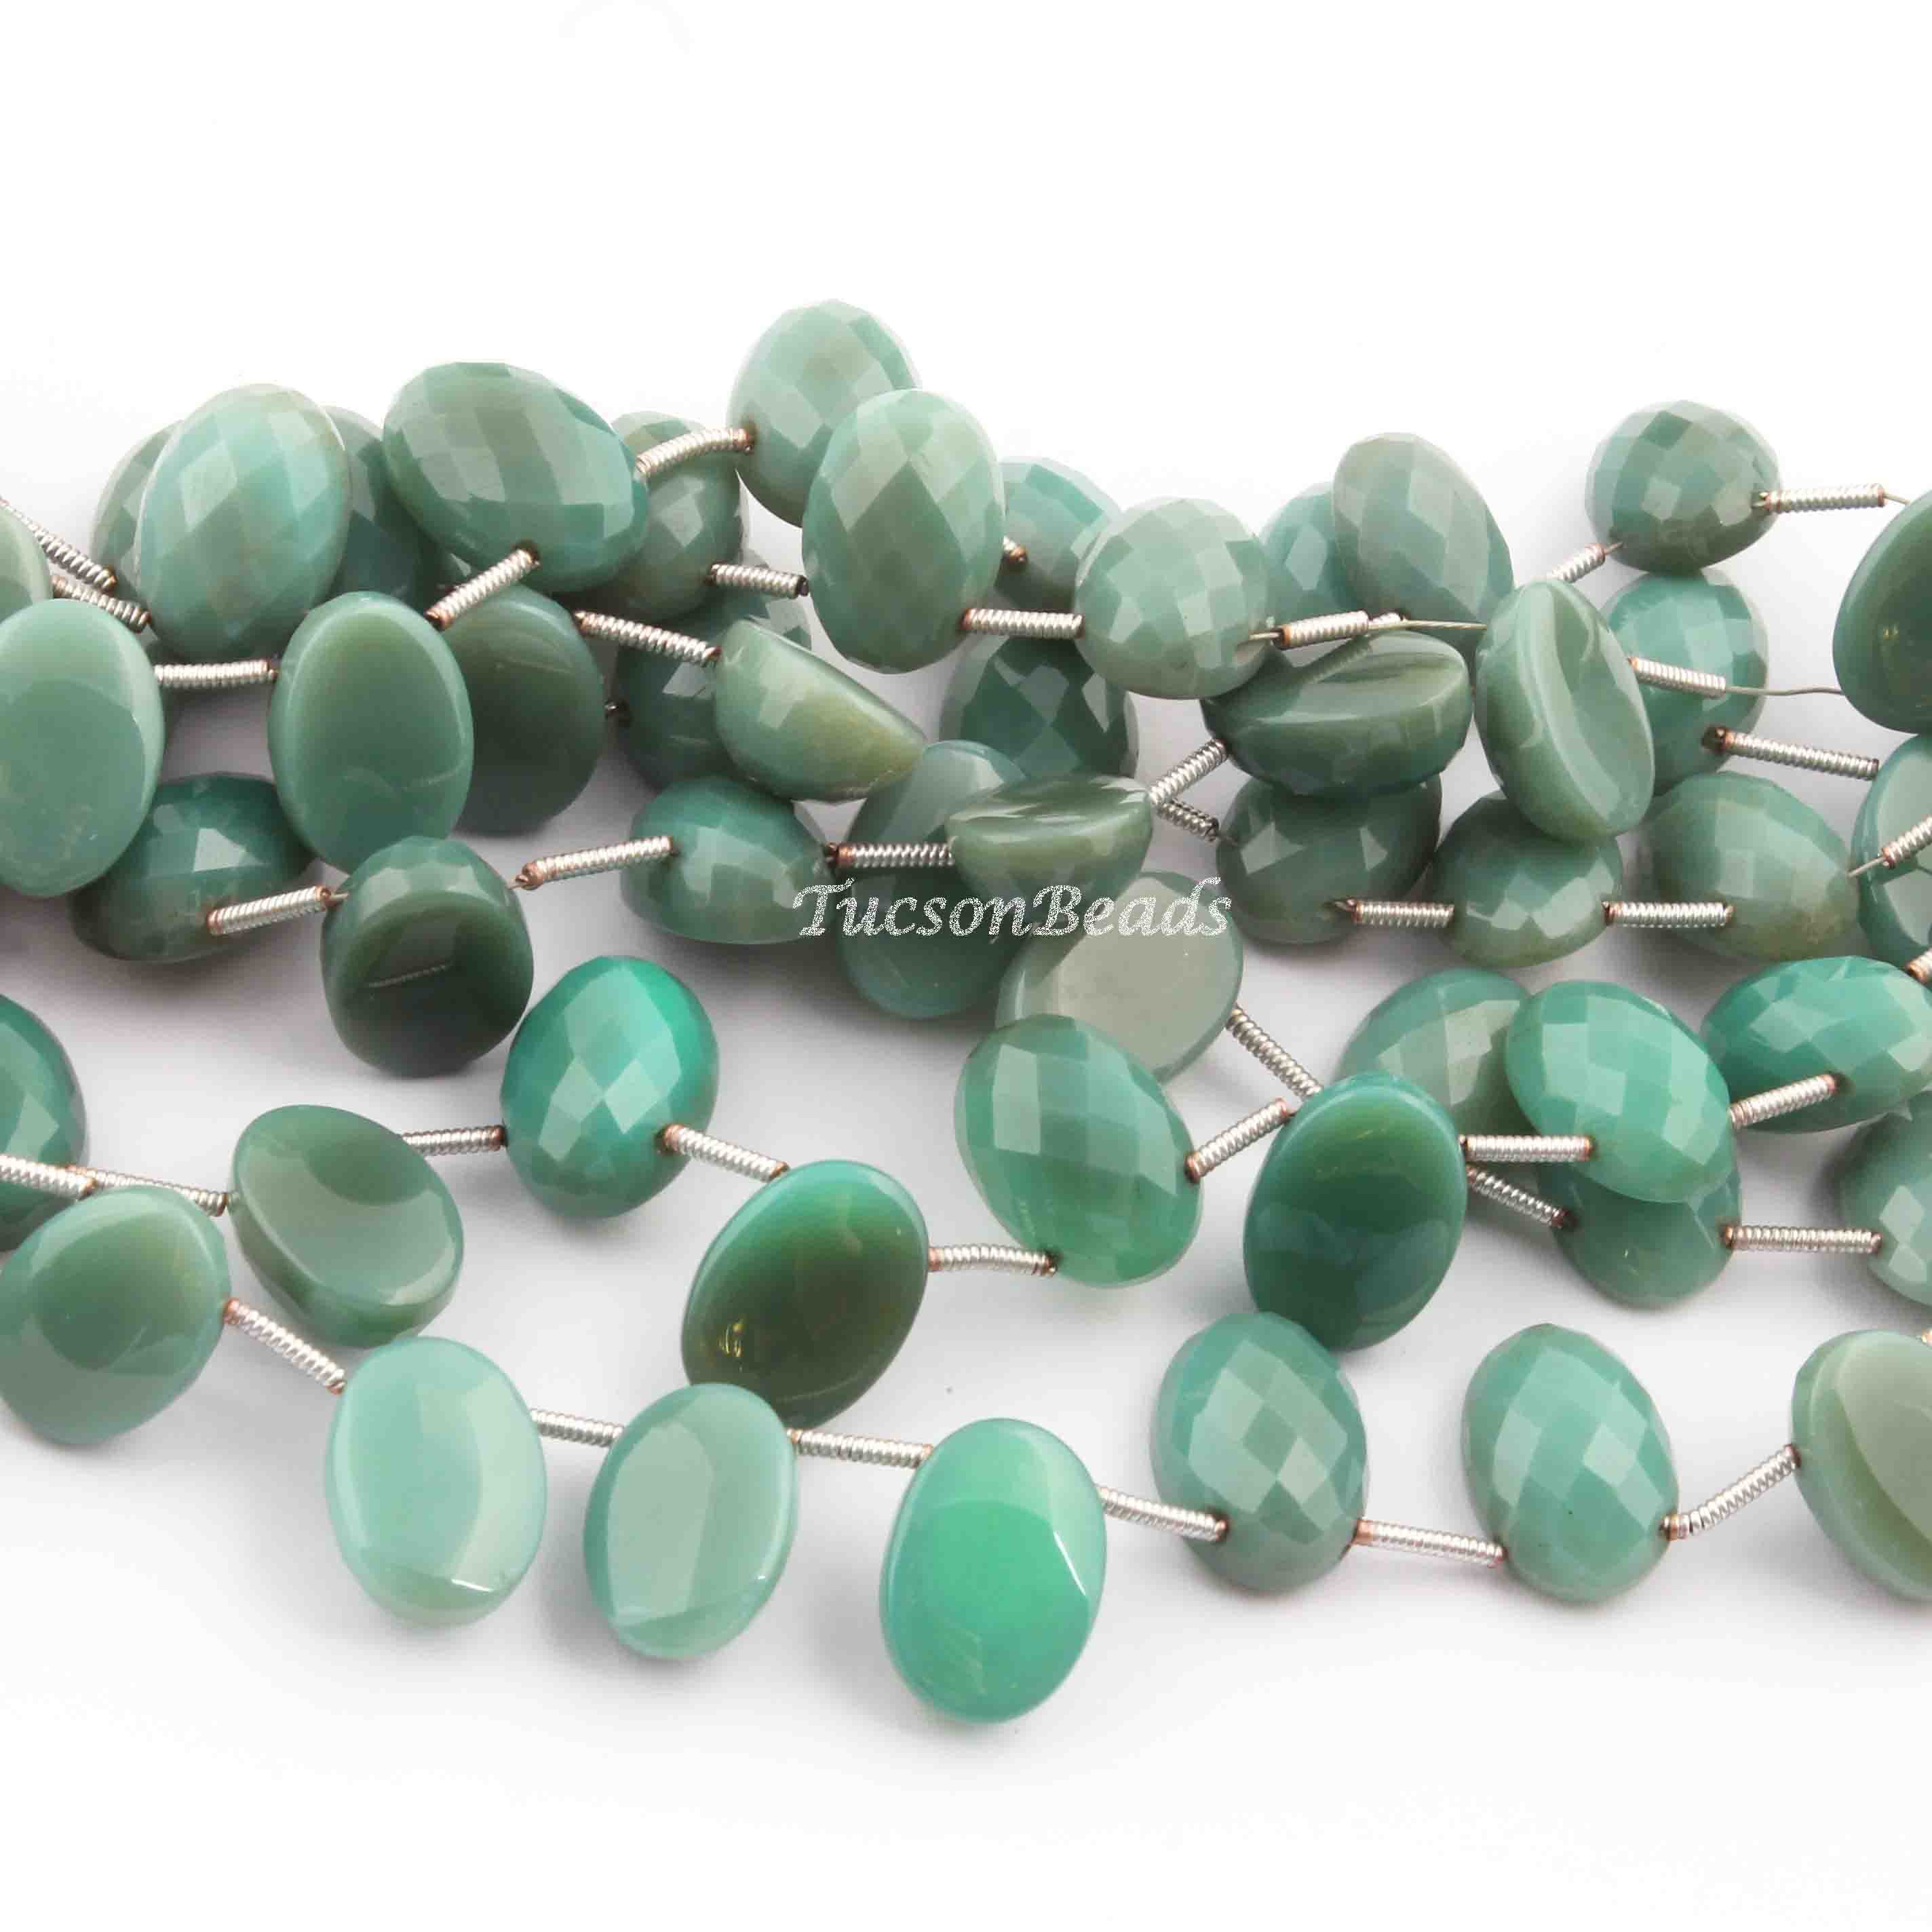 1 Strand Prehnite Faceted Briolettes Tear Beads 12mmx8mm-15mmx10mm 9 Inches SP359